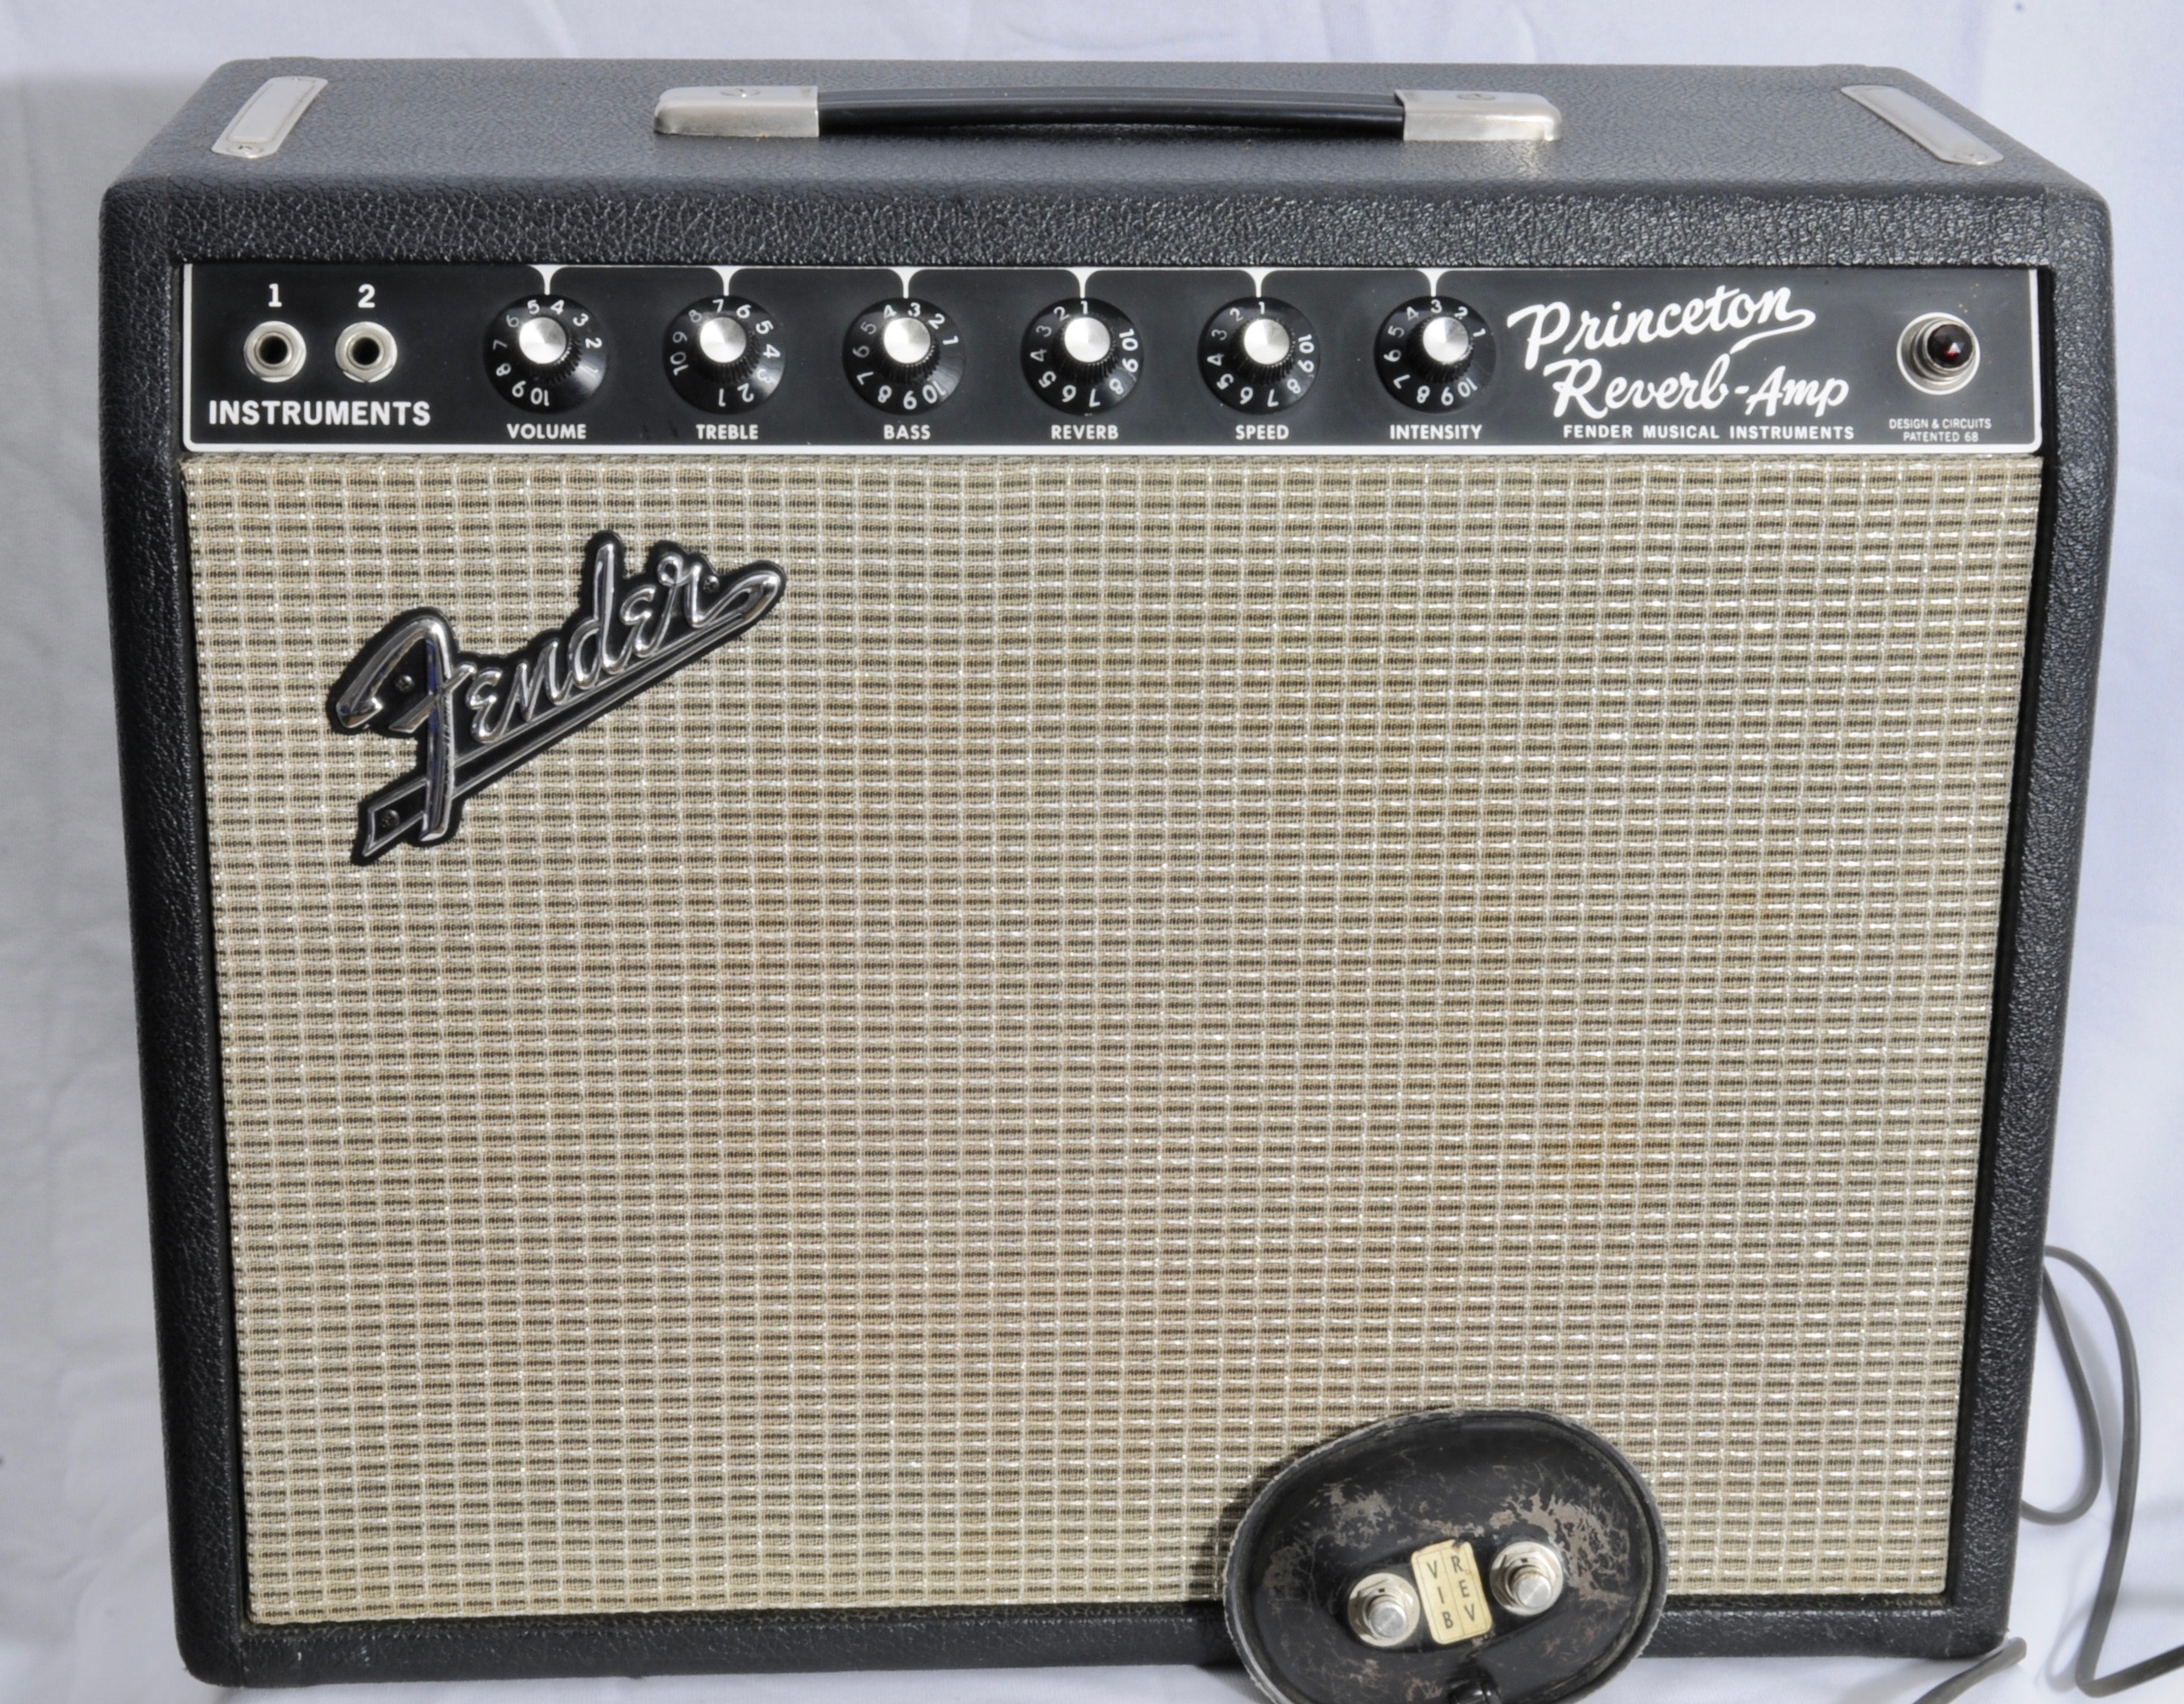 1966 Fender Princeton Reverb – WOW Clean